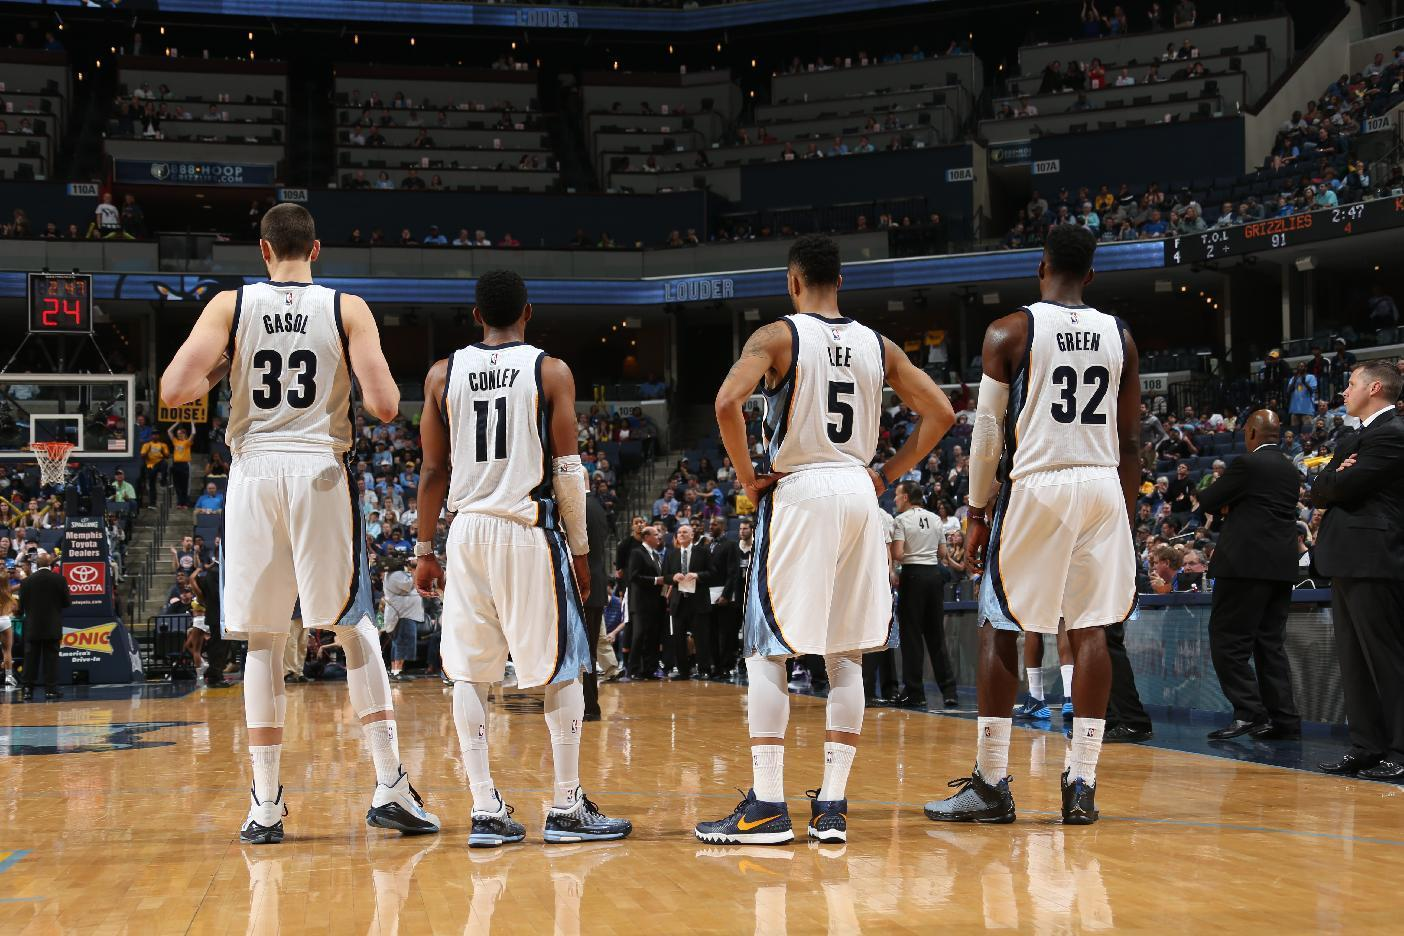 Grizzlies beat Kings 97-83 to end three-game skid